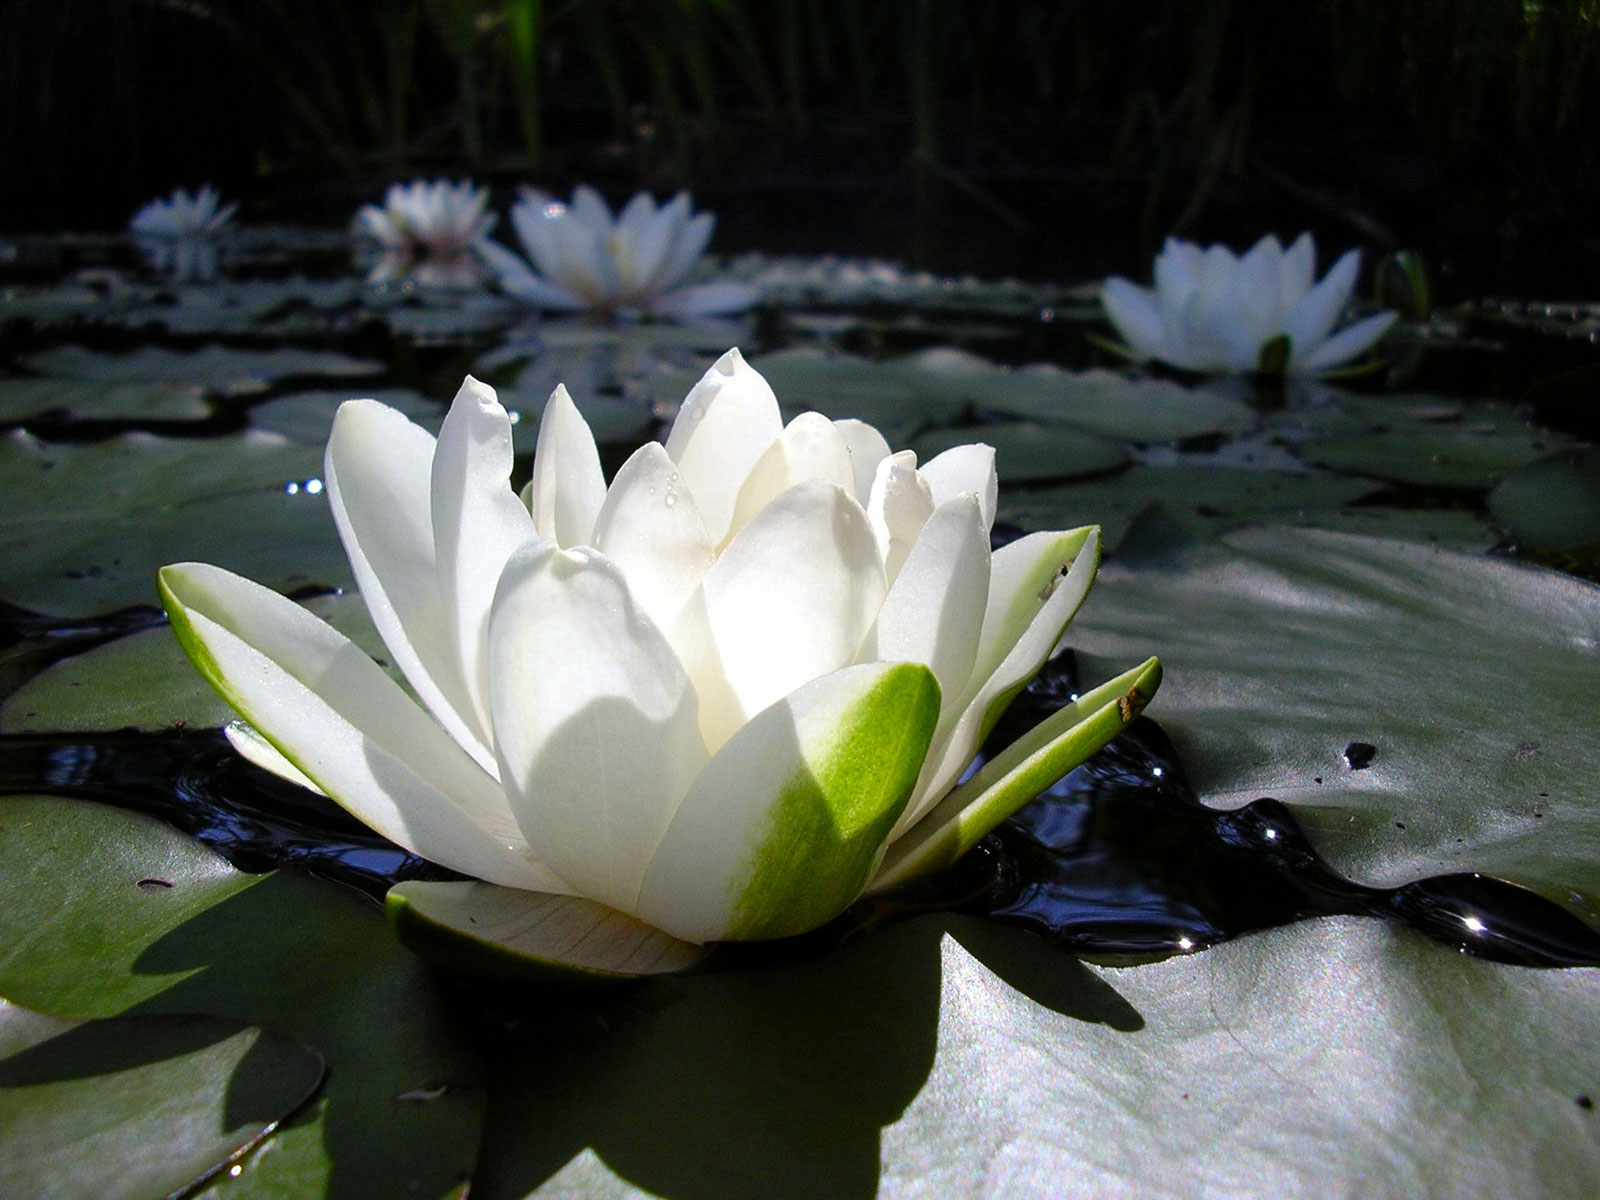 Flower Wallpaper Free: Lotus Flower Wallpaper